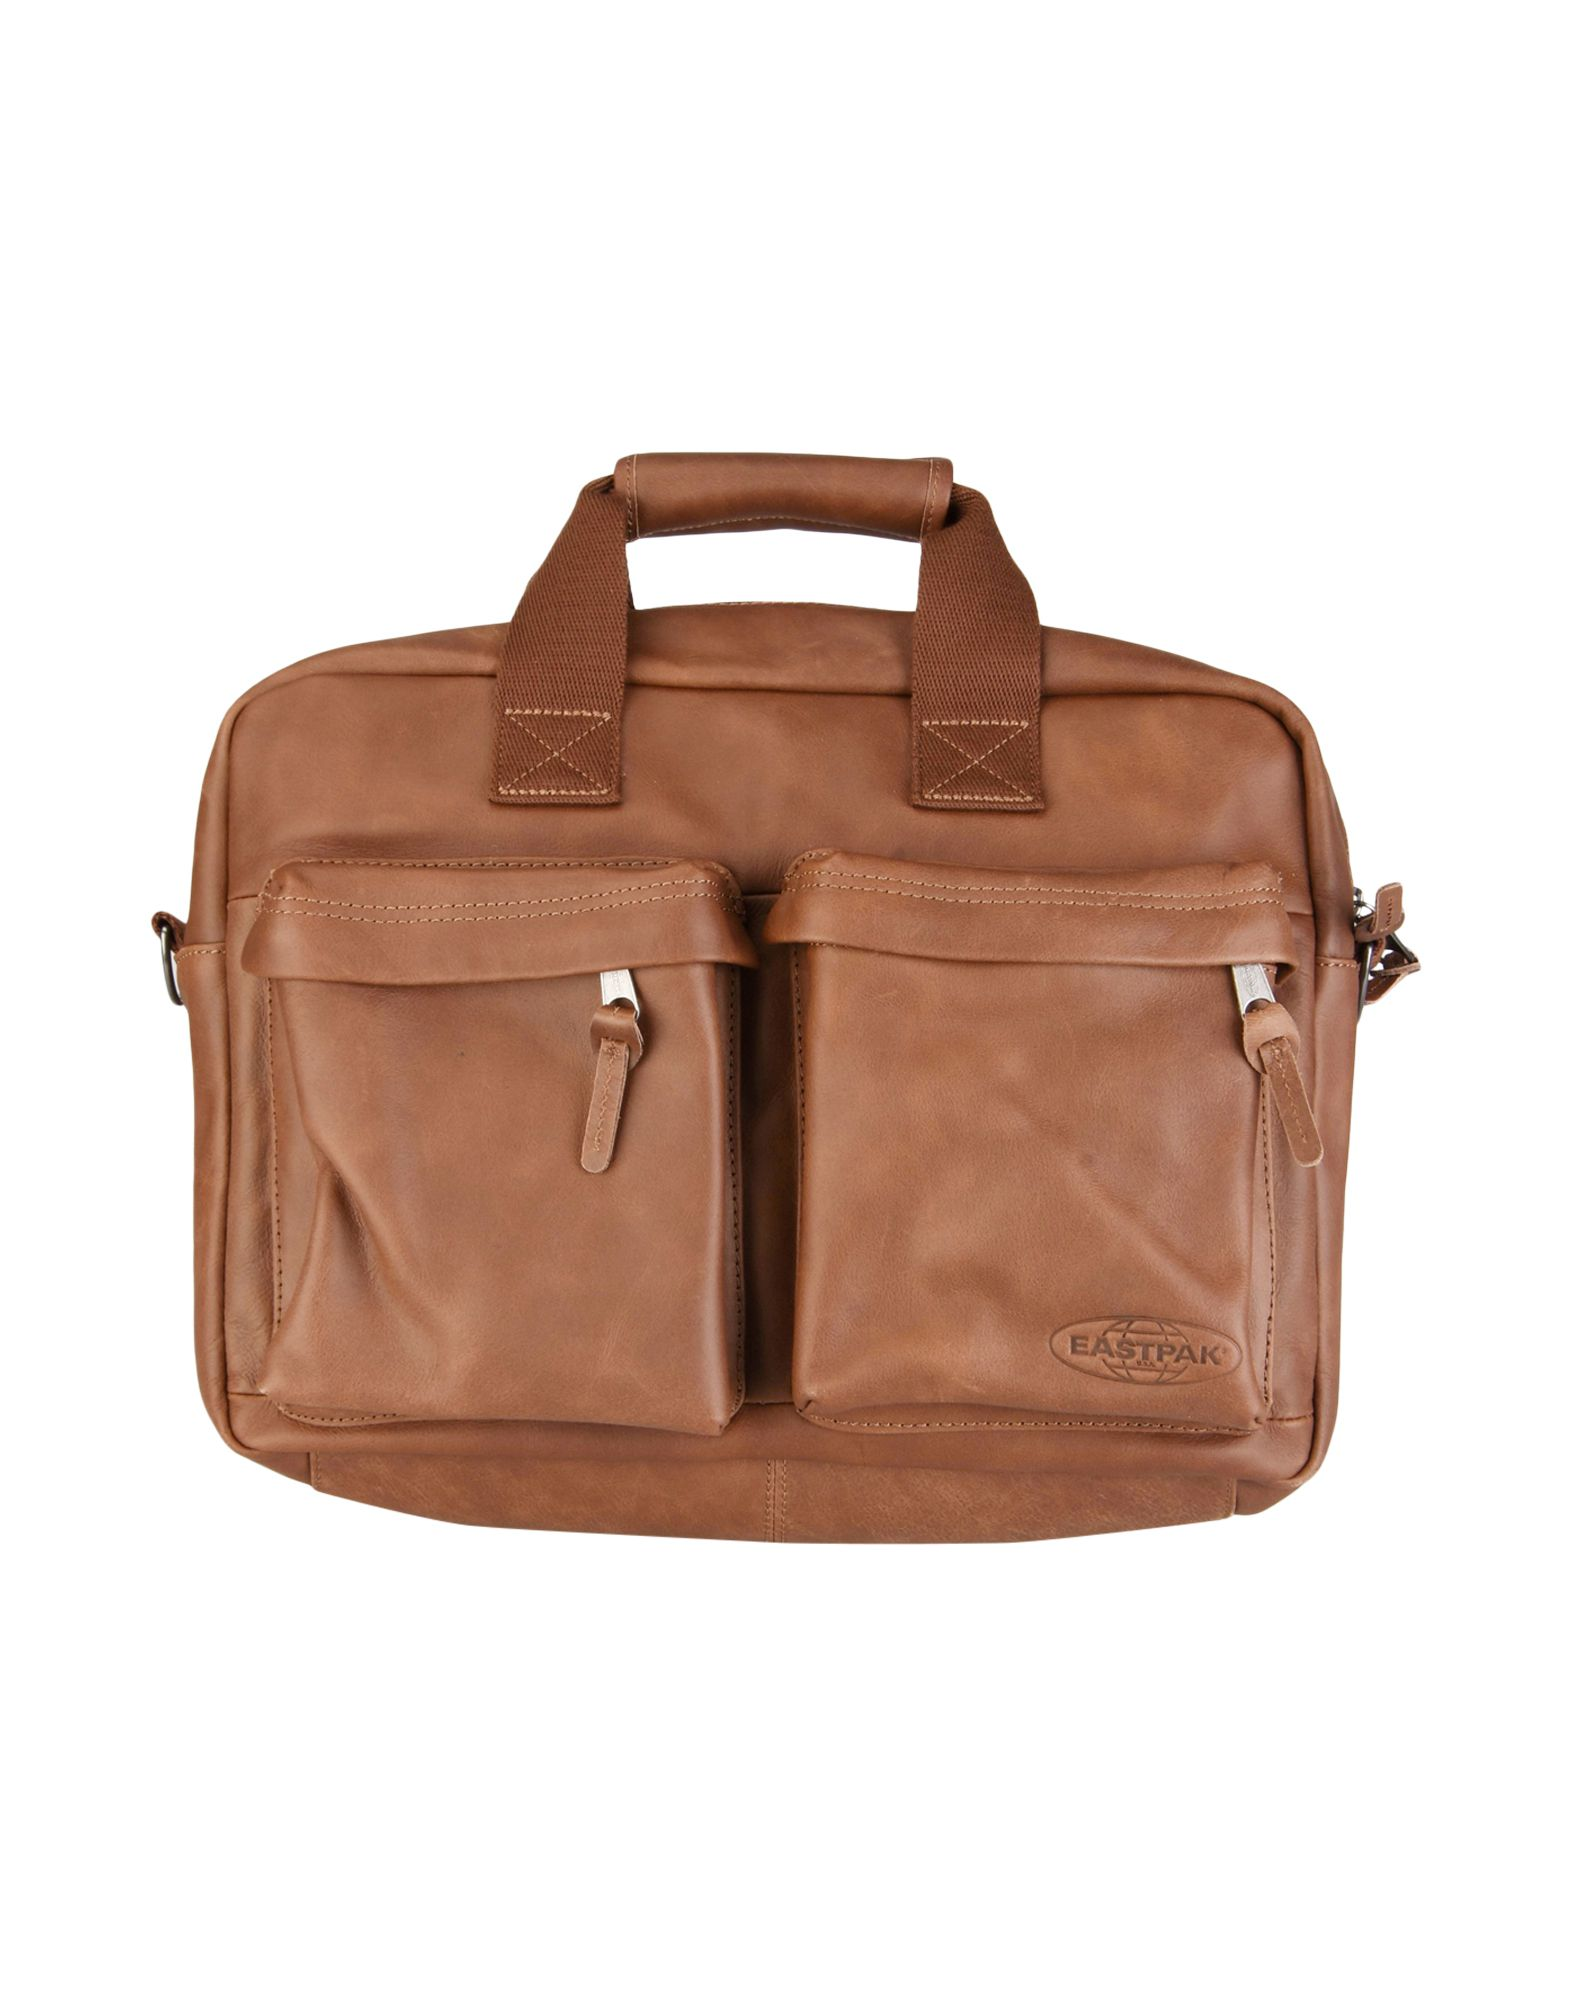 Borsa Da Lavoro Eastpak Authentic Leather Tomec - Uomo - Acquista online su